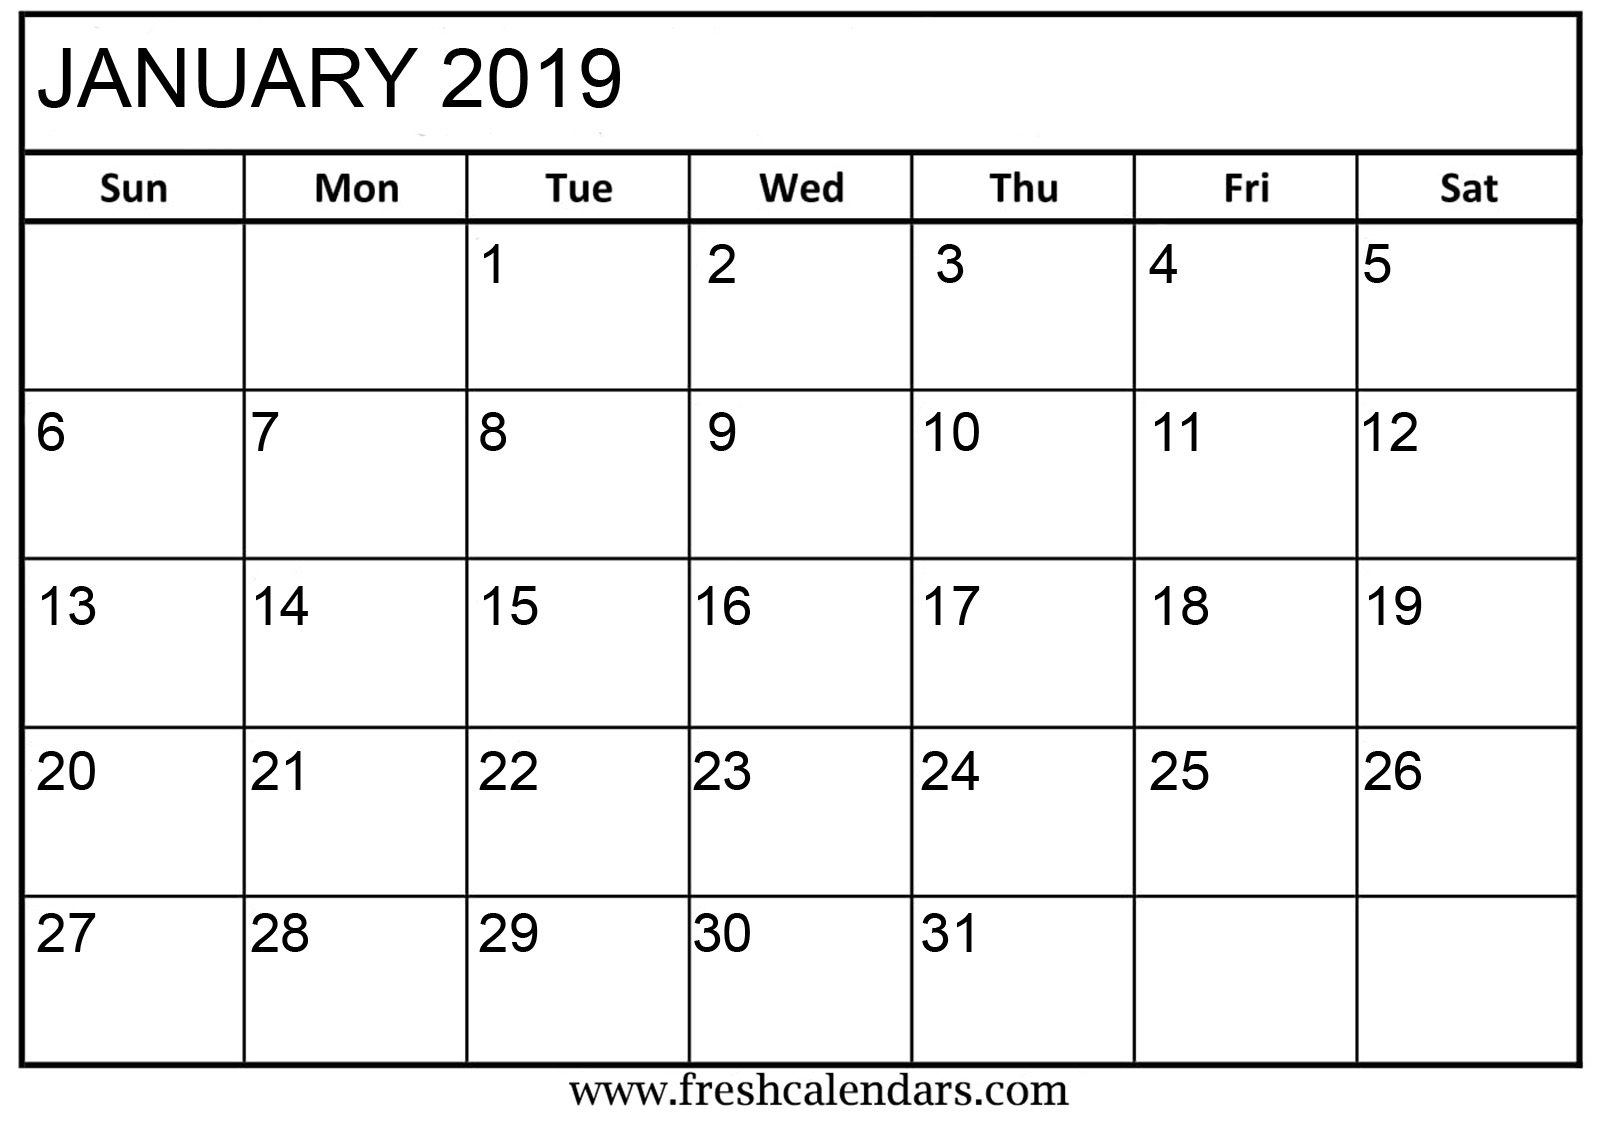 Time rules our lives, with appointments and deadlines guiding us through our days. January 2019 Calendar Printable